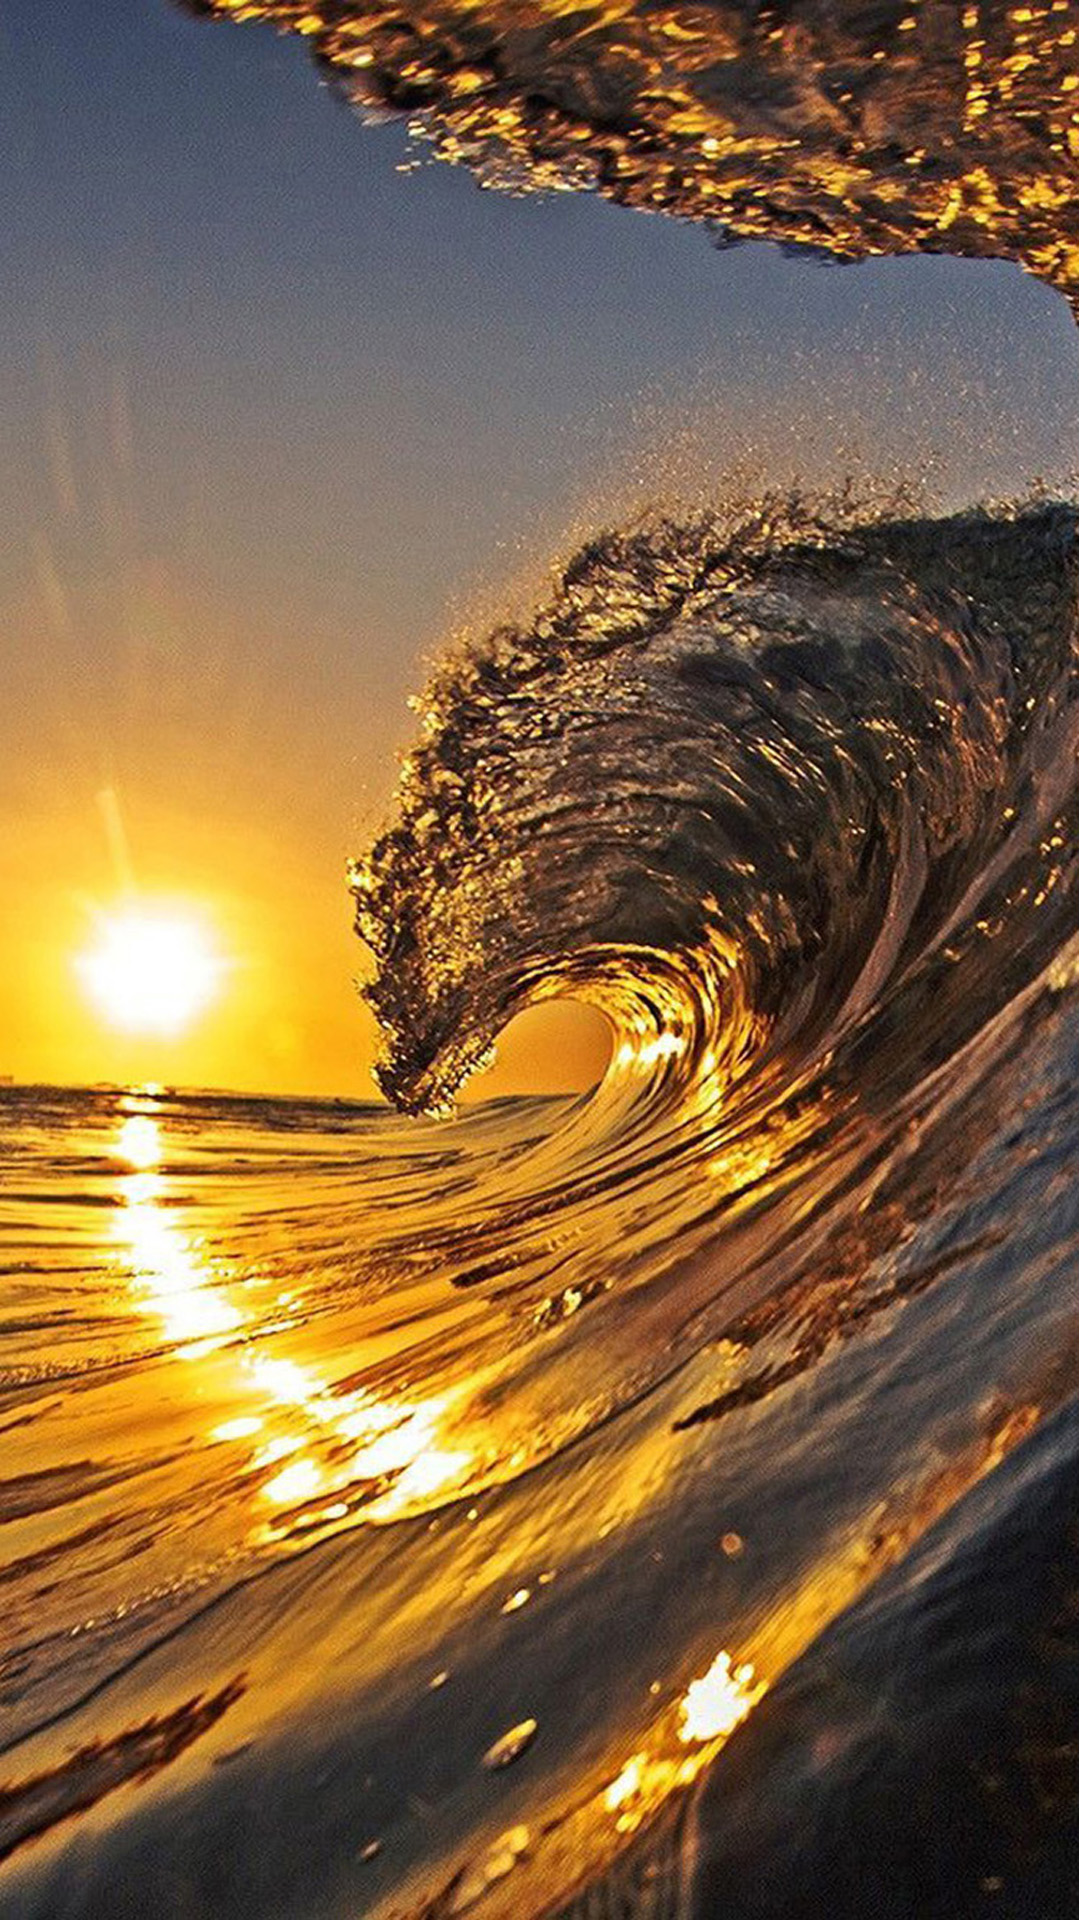 Cute Colorful Wallpapers For Iphone Sunset Waves Iphone 7 Wallpaper Iphone7wallpapers Co